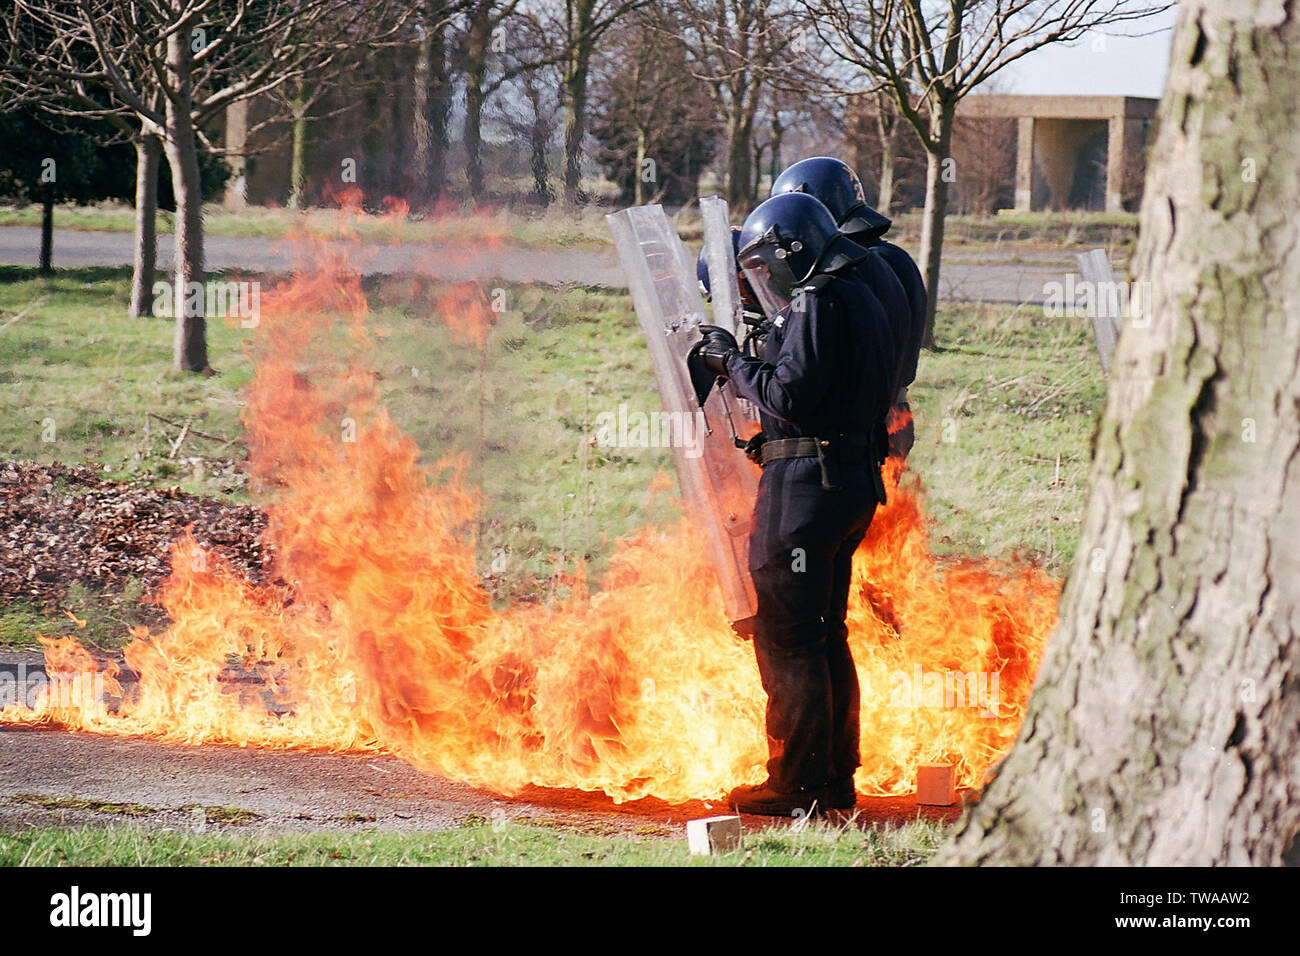 riot police, fire bomb attack - Stock Image